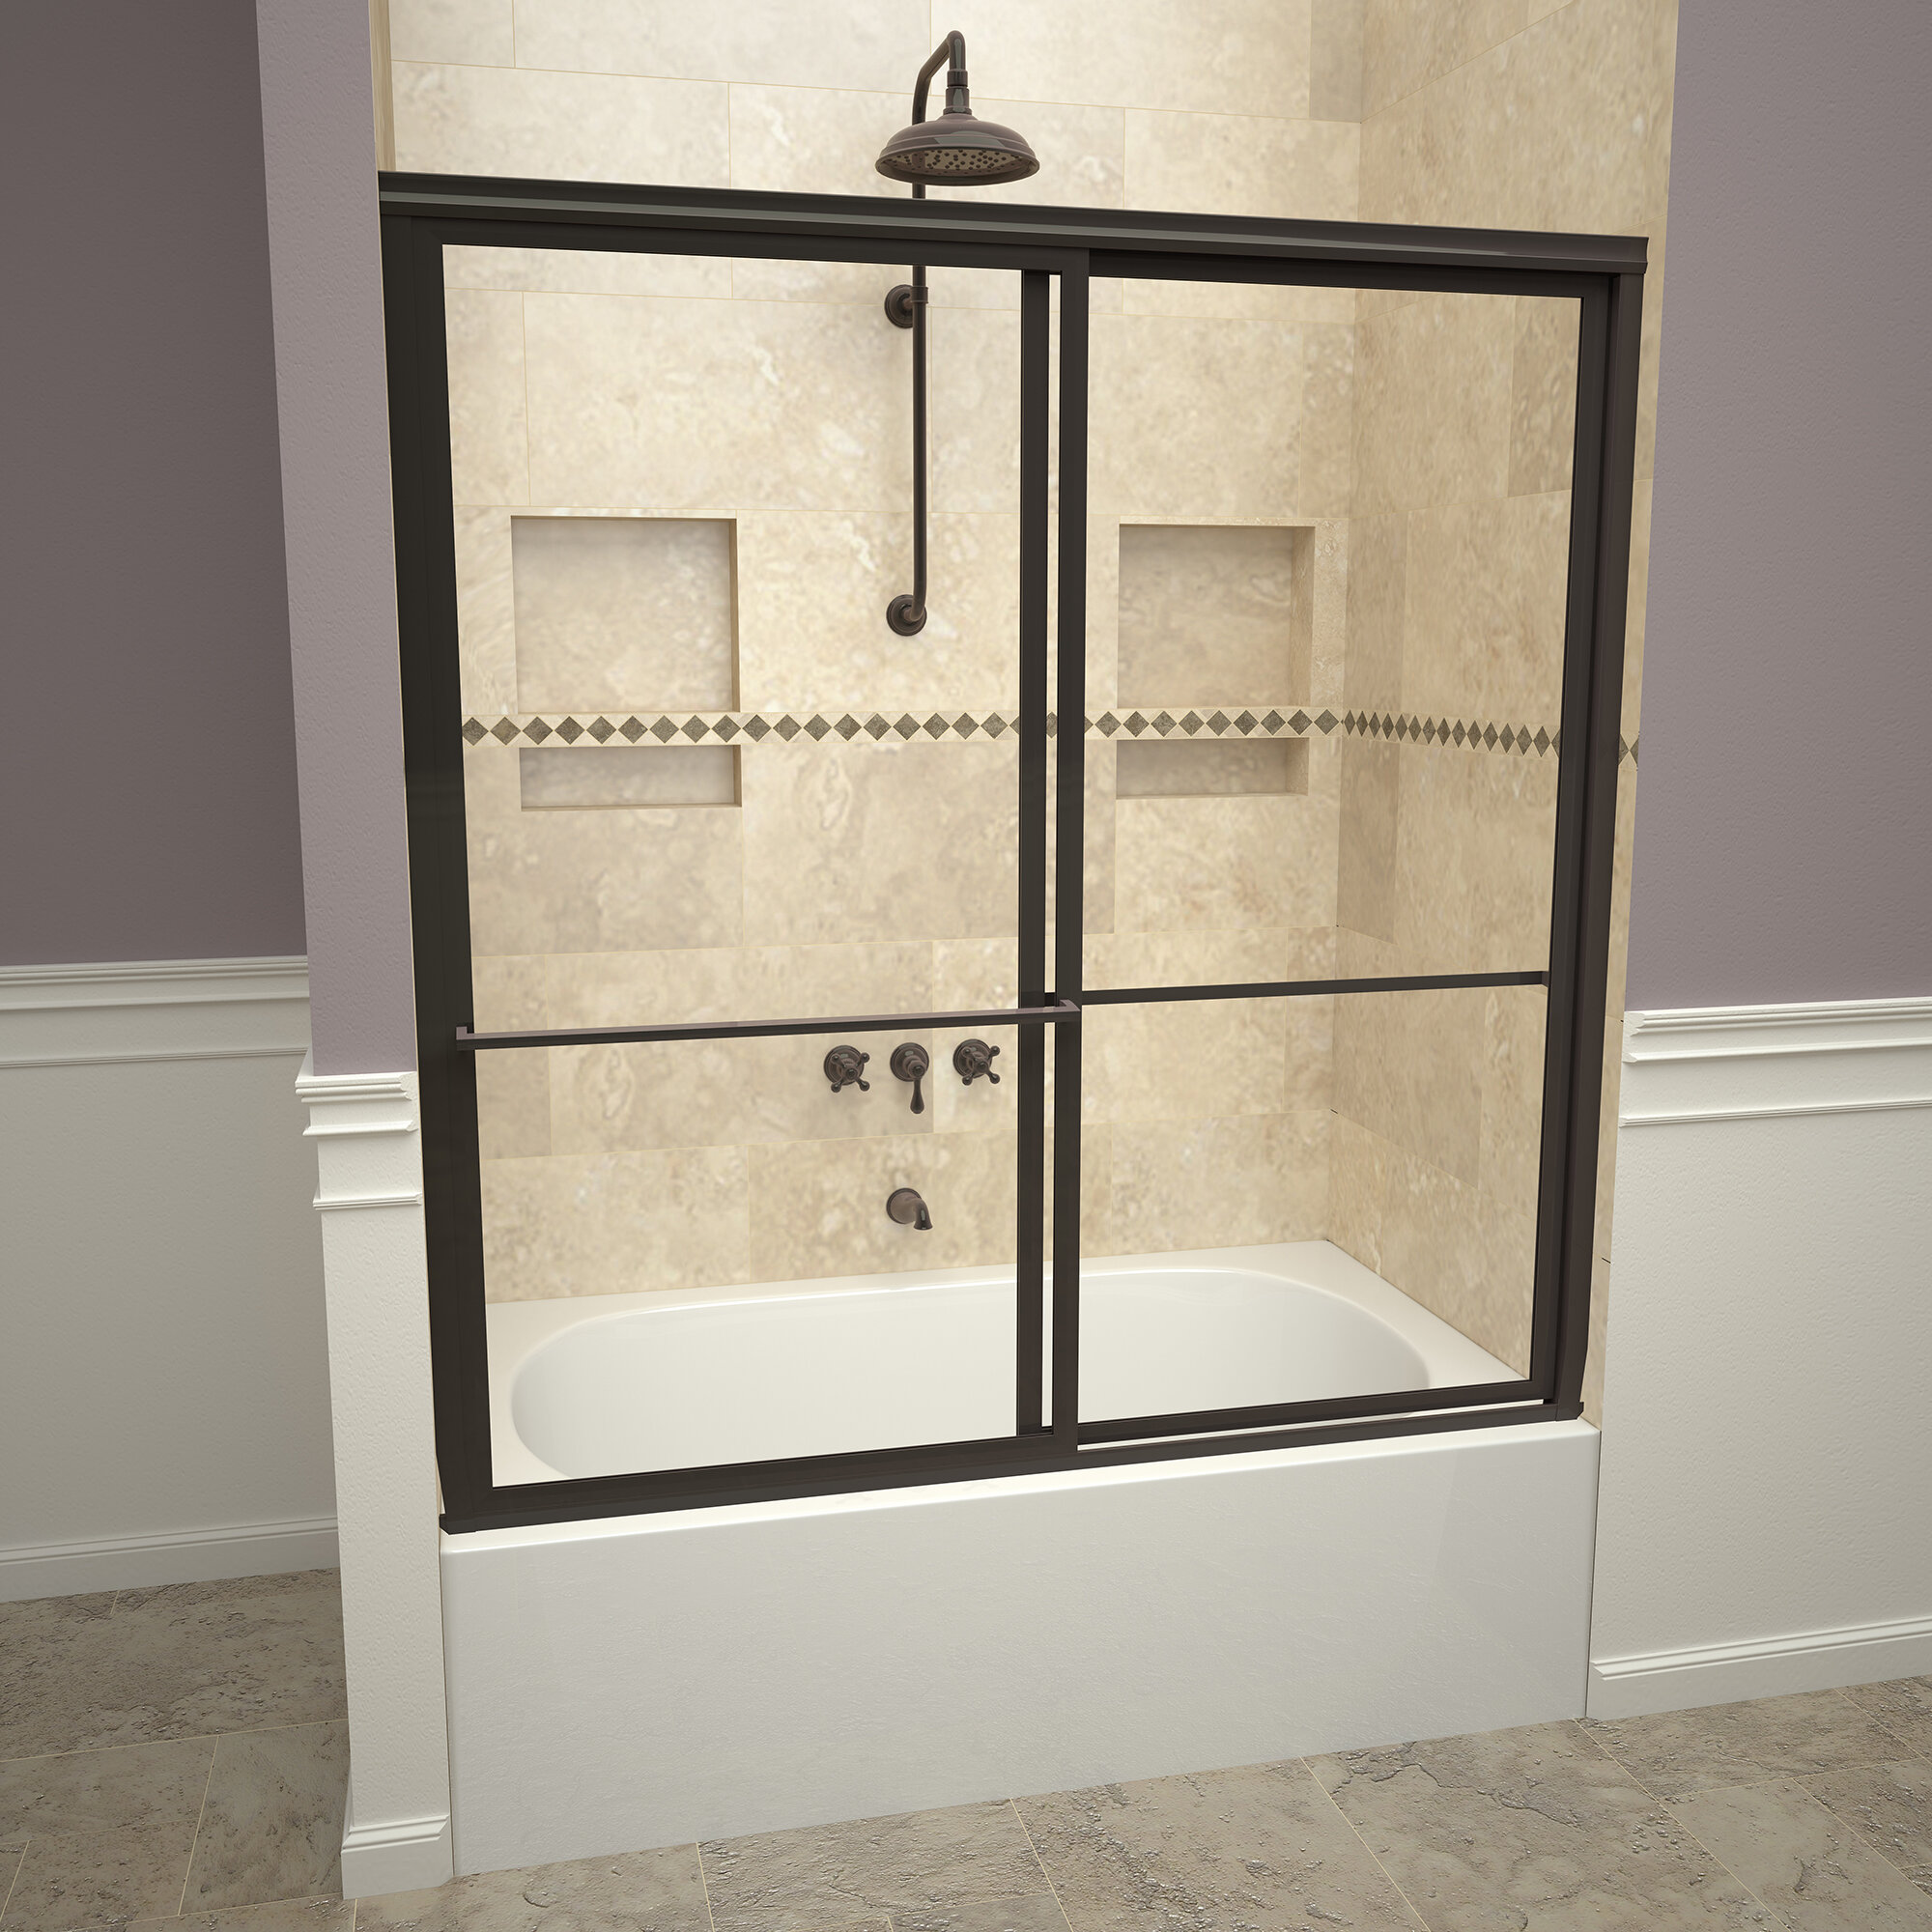 Details About 1100 Series 59 X 58 5 Double Sliding Framed Tub Door Oil Rubbed Bronze Pattern